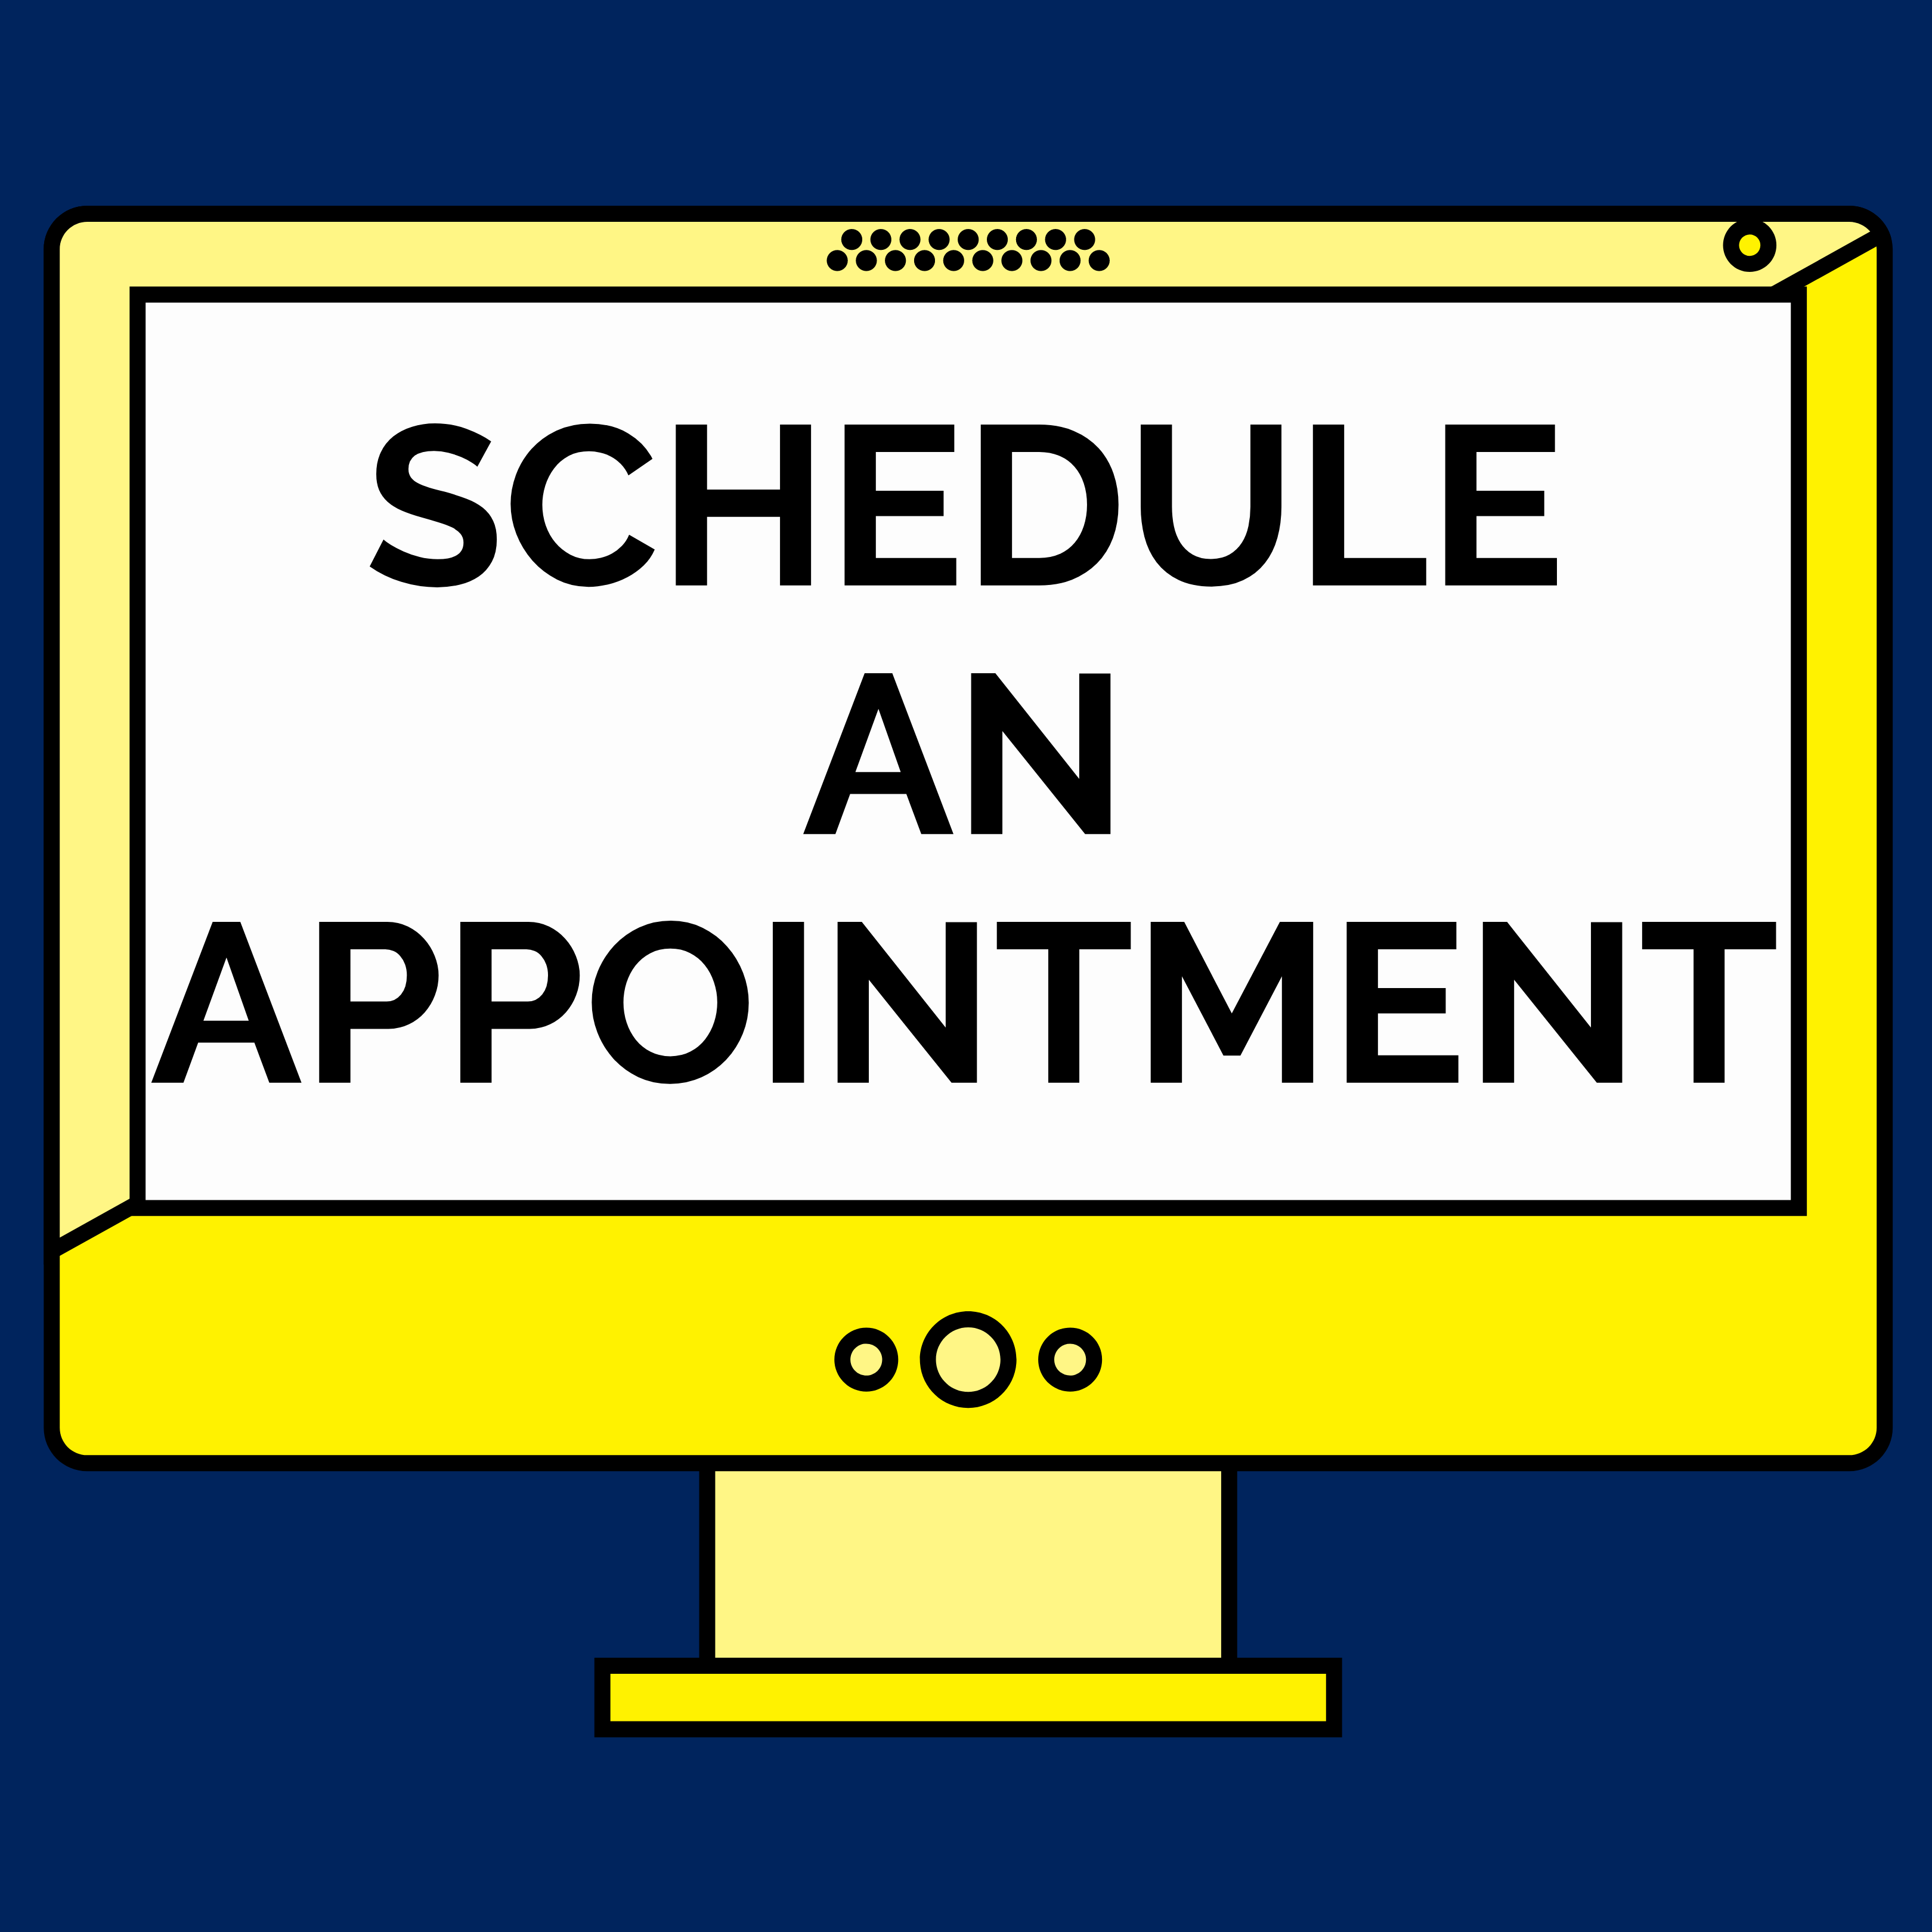 Schedule an appointment via the VAC